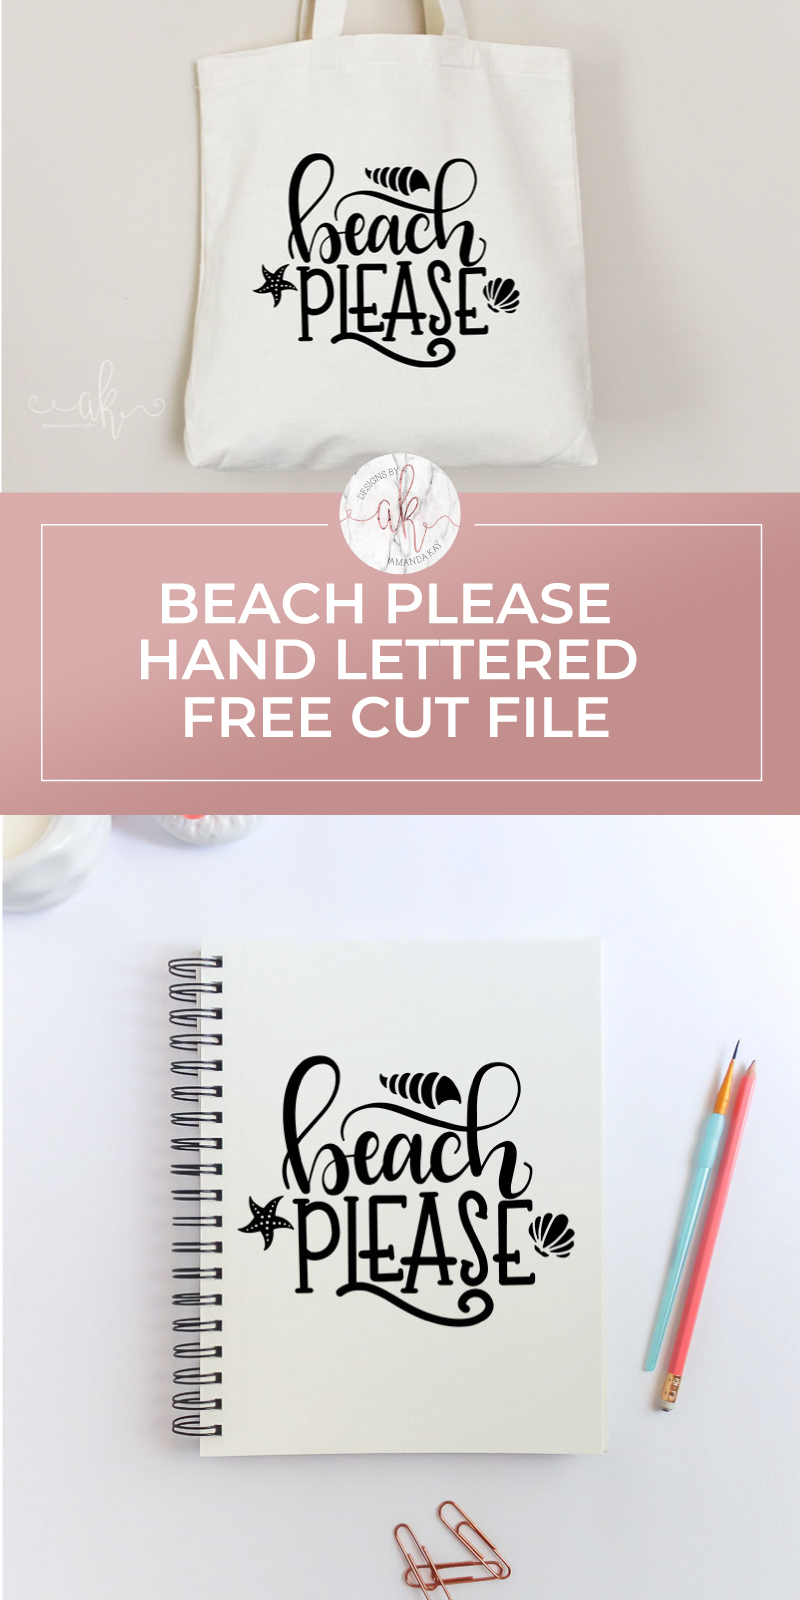 Everyone could use a little beach in their lives. Grab your FREE beach please hand lettered cut file to make some fun Summer apparel.